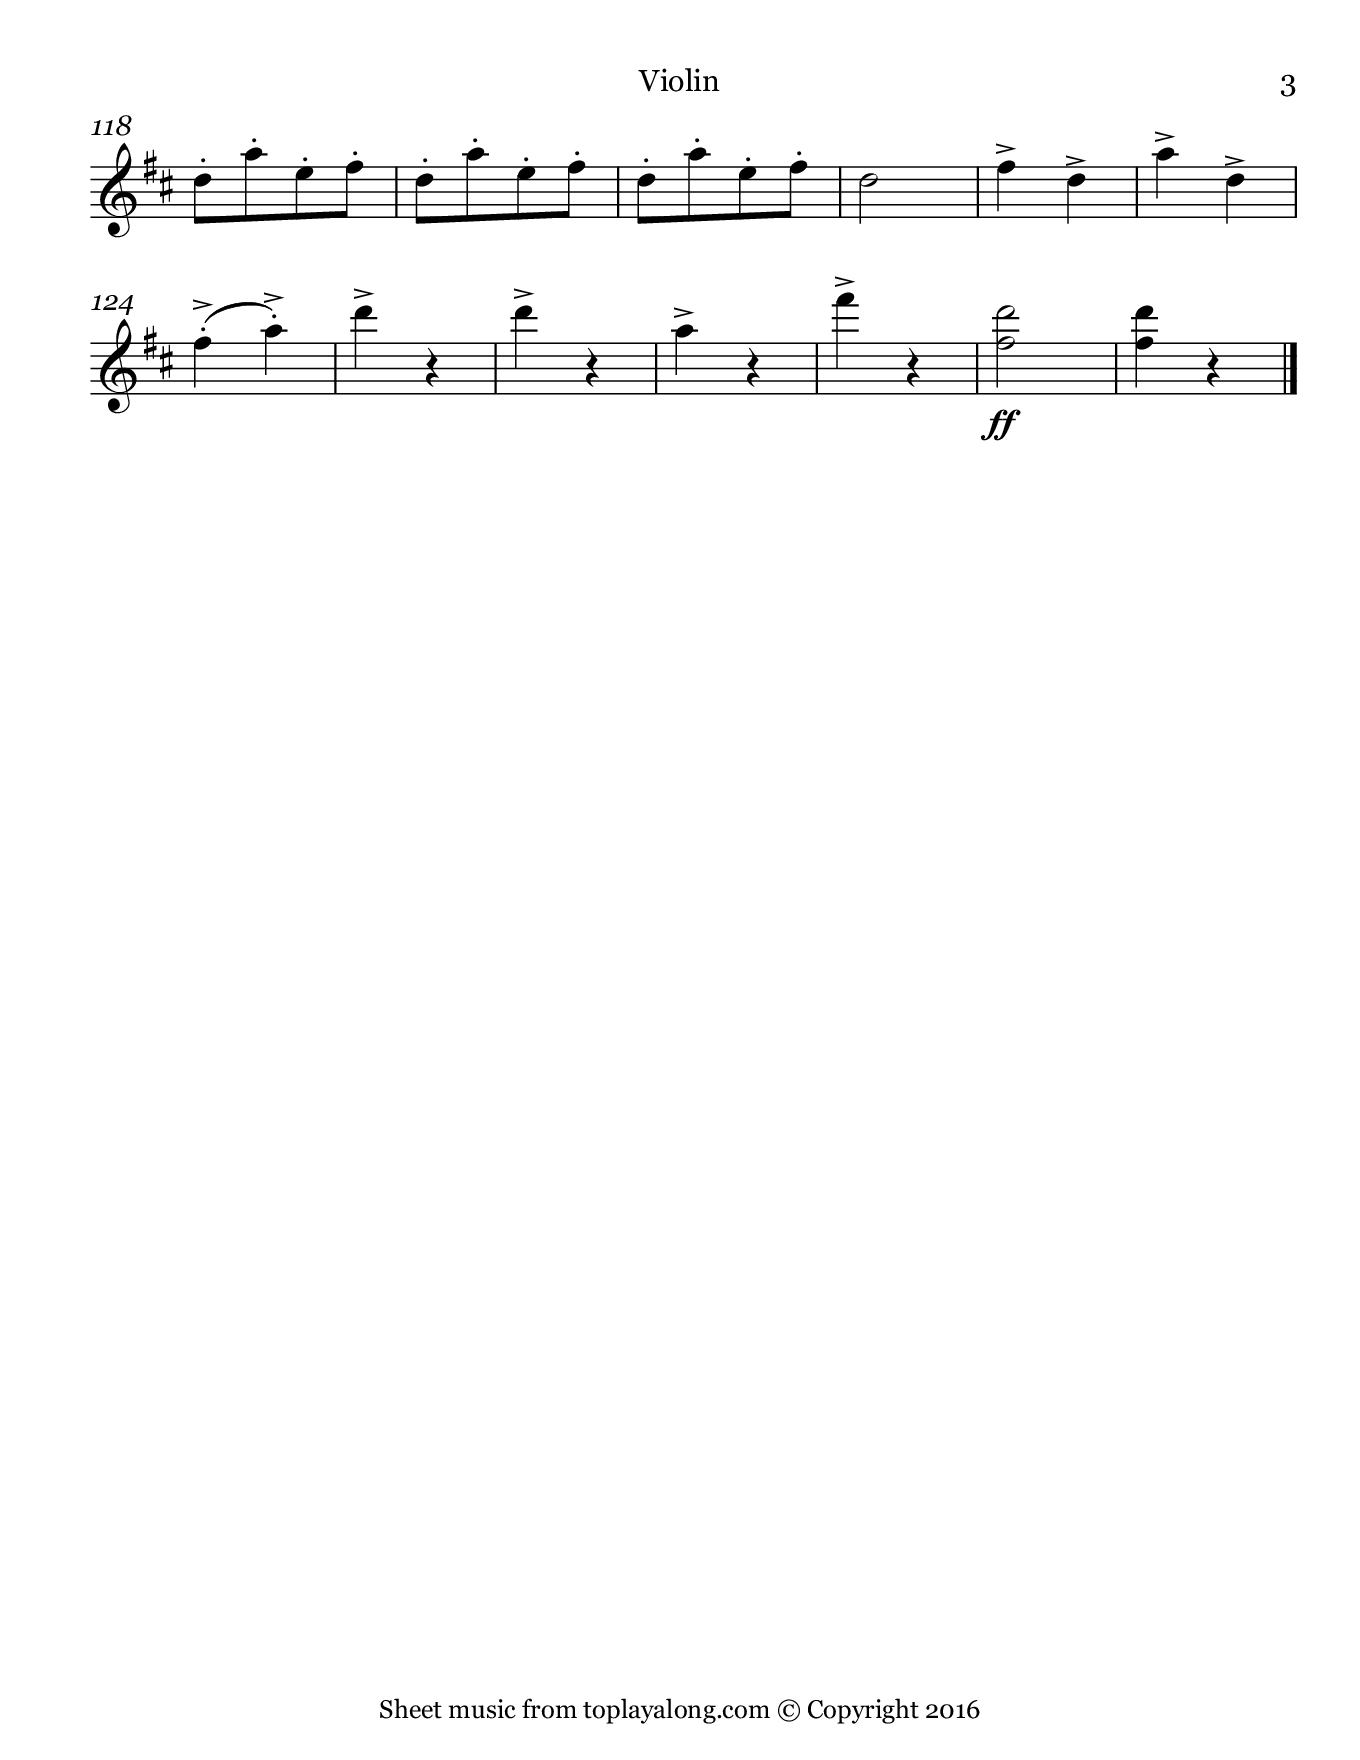 Infernal Galop (Can Can) from Orpheus by Offenbach. Sheet music for Violin, page 3.